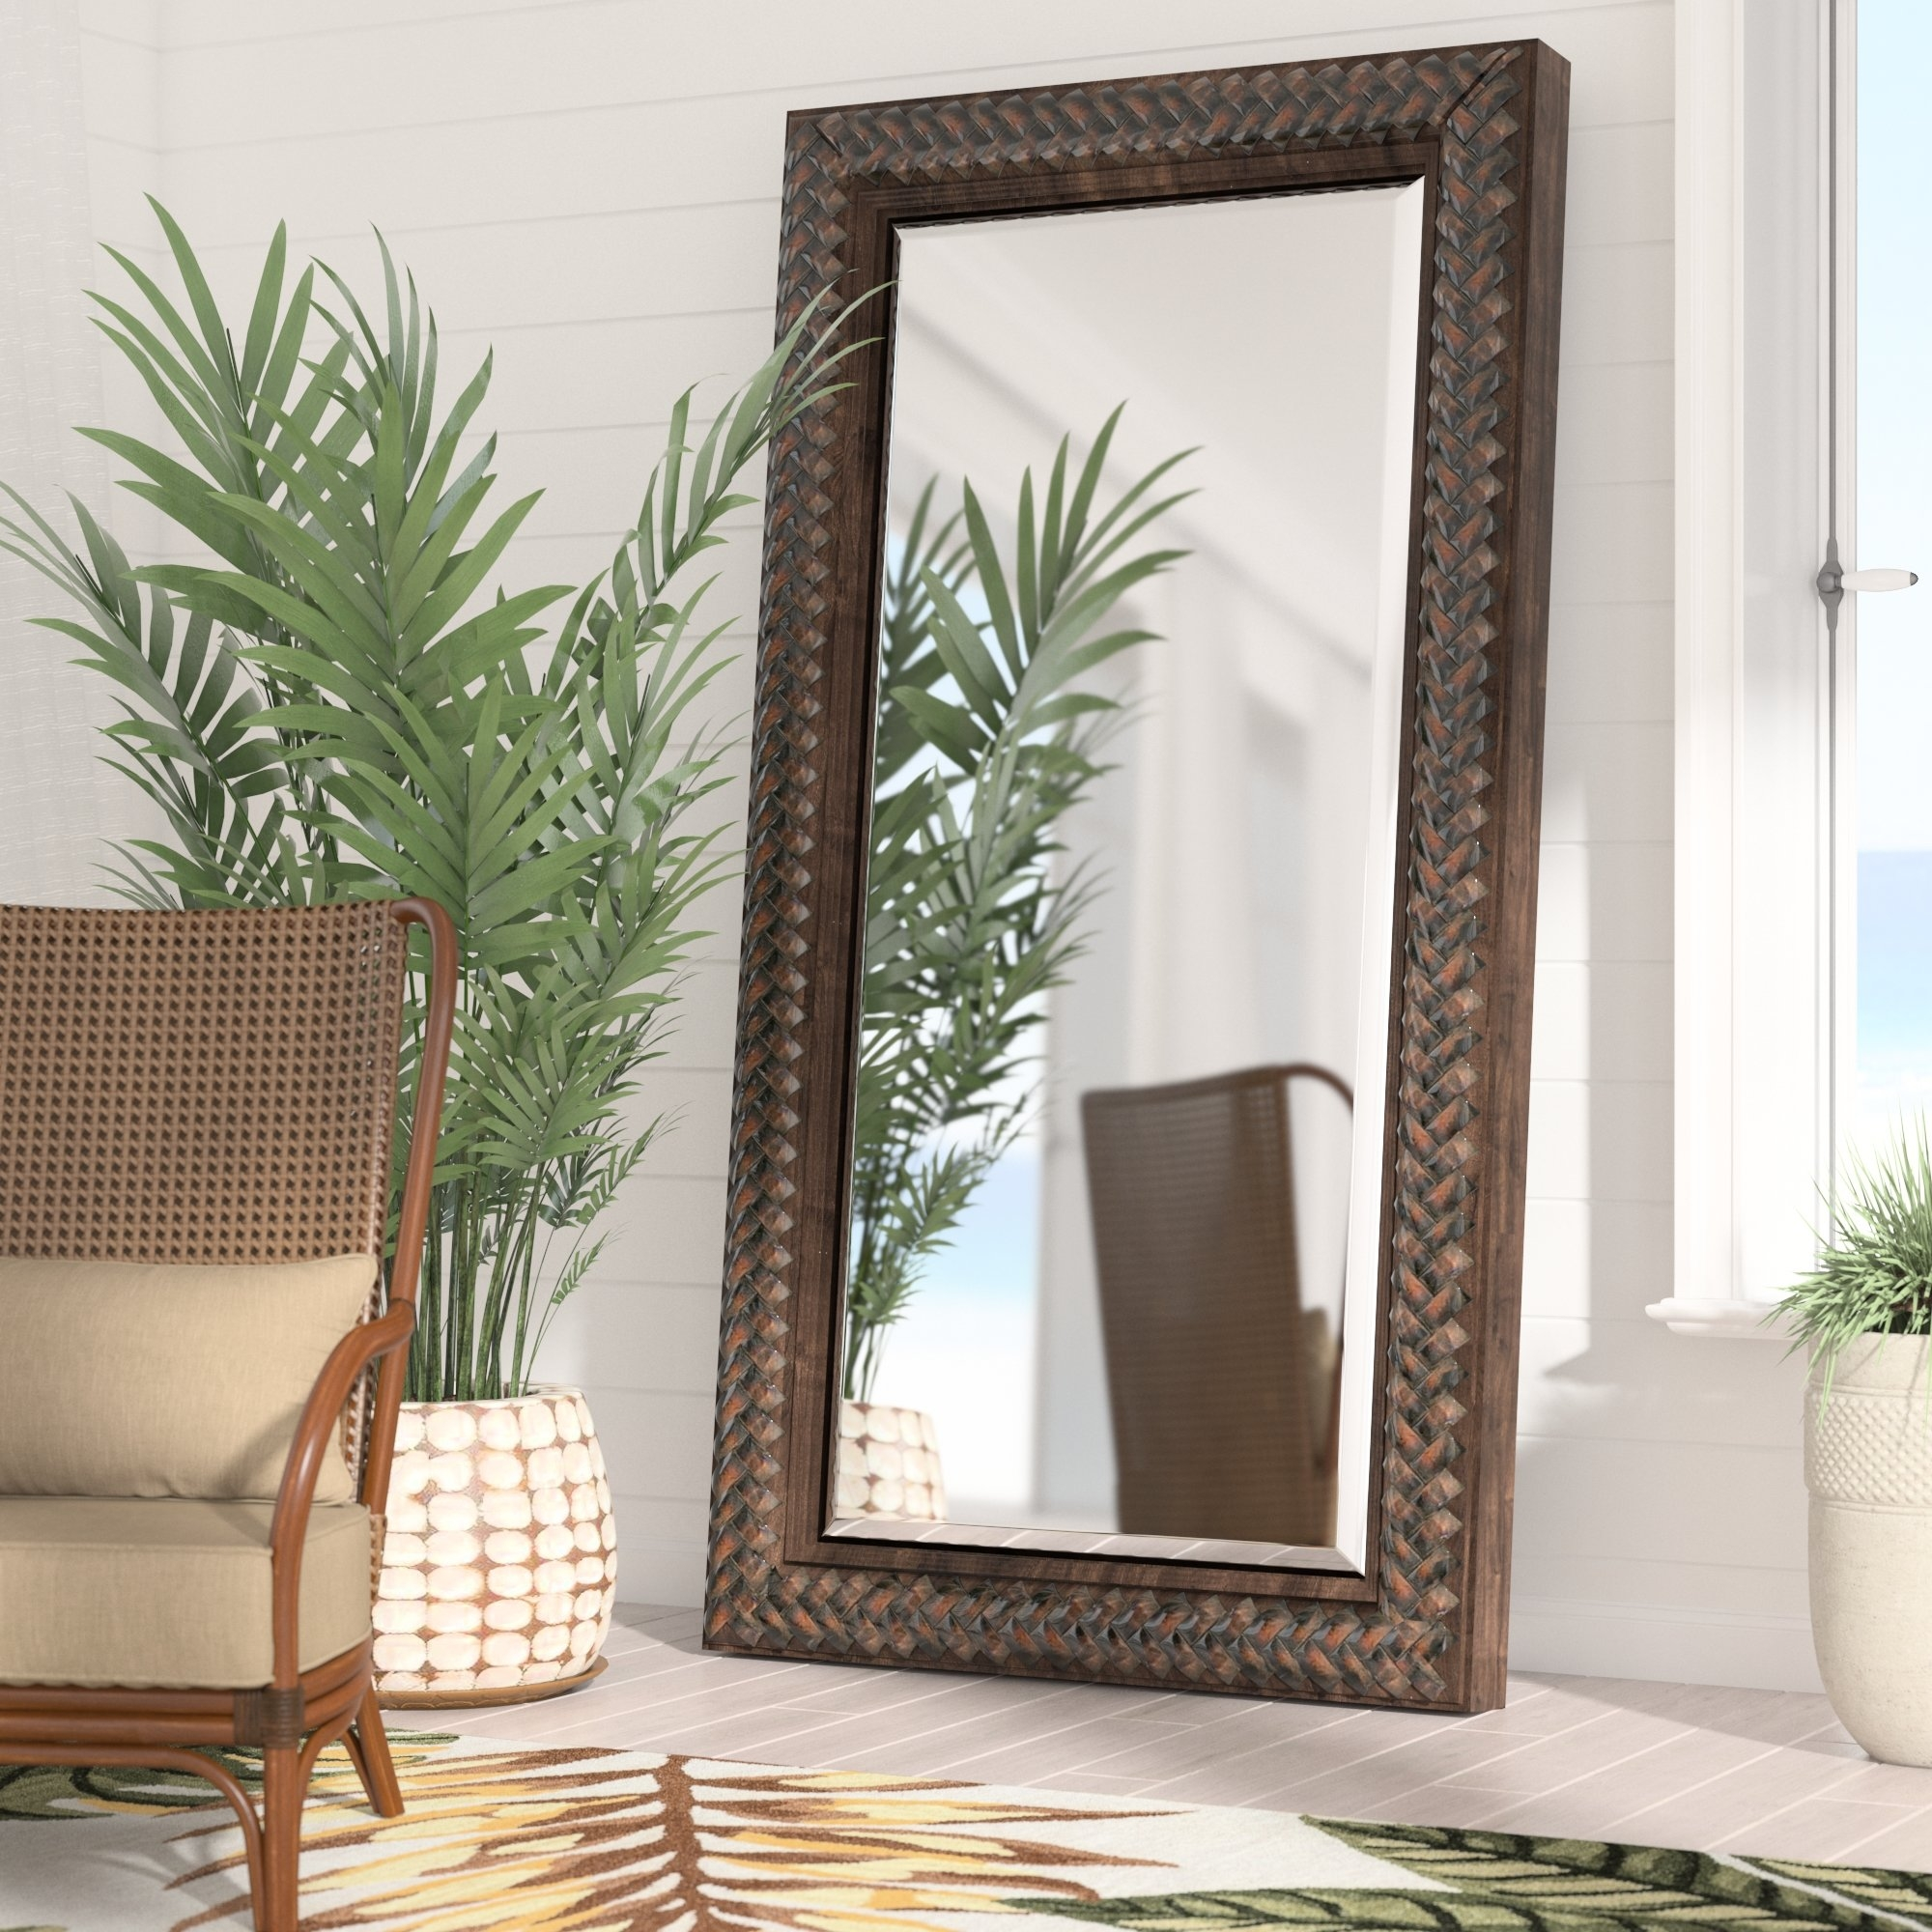 Coastal Mirrors Youll Love Wayfair Throughout Long Mirrors For Sale (Image 6 of 15)